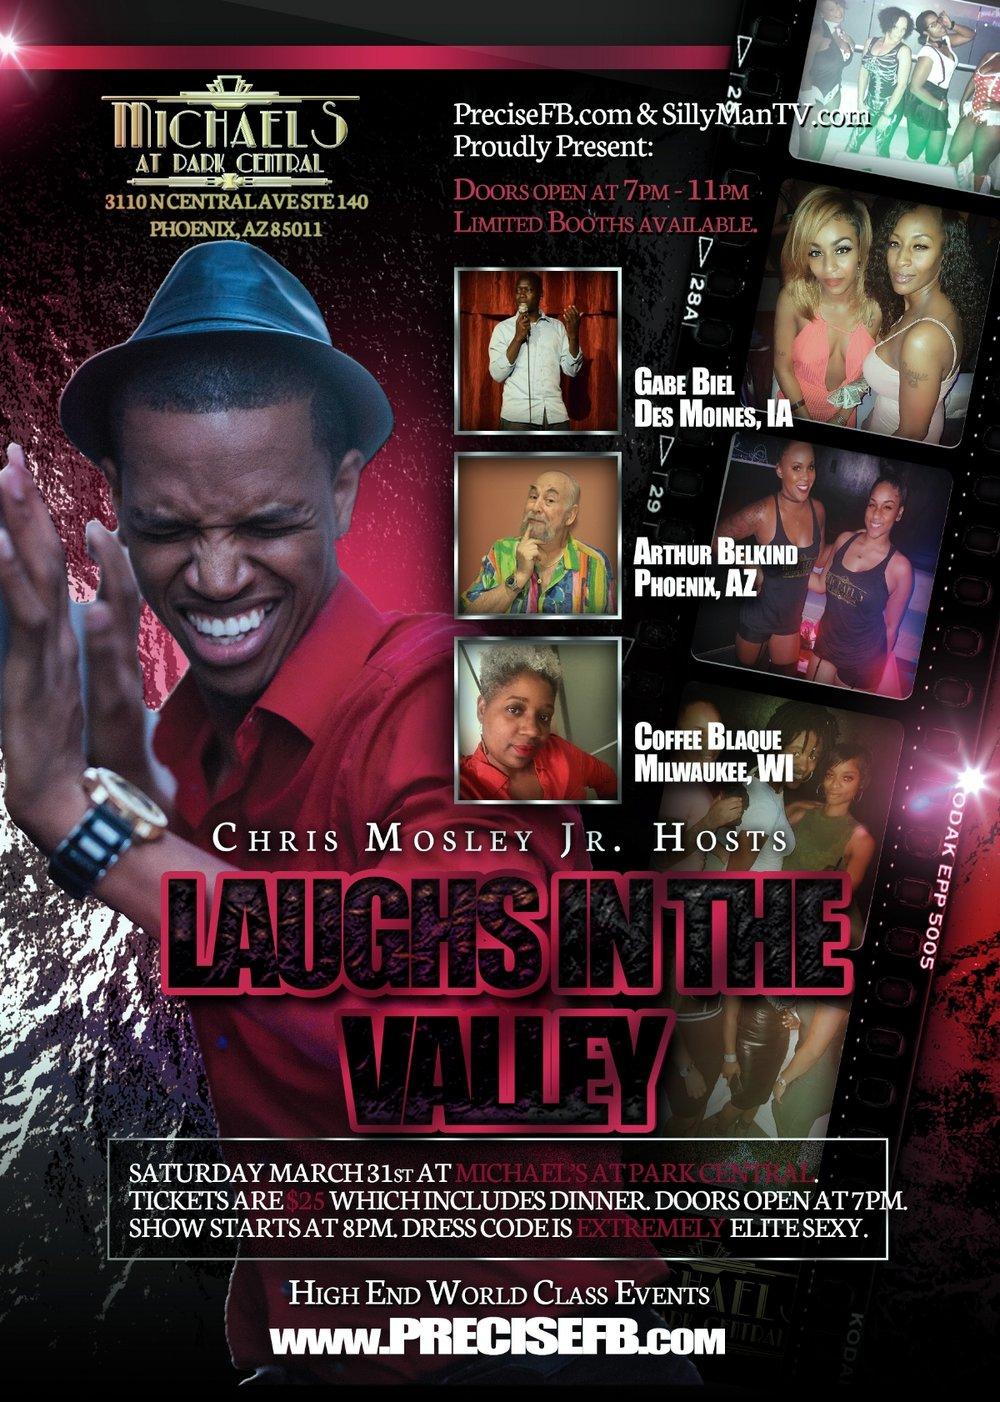 chris-mosley-jr-laughs-in-the-valley-march-31.jpg